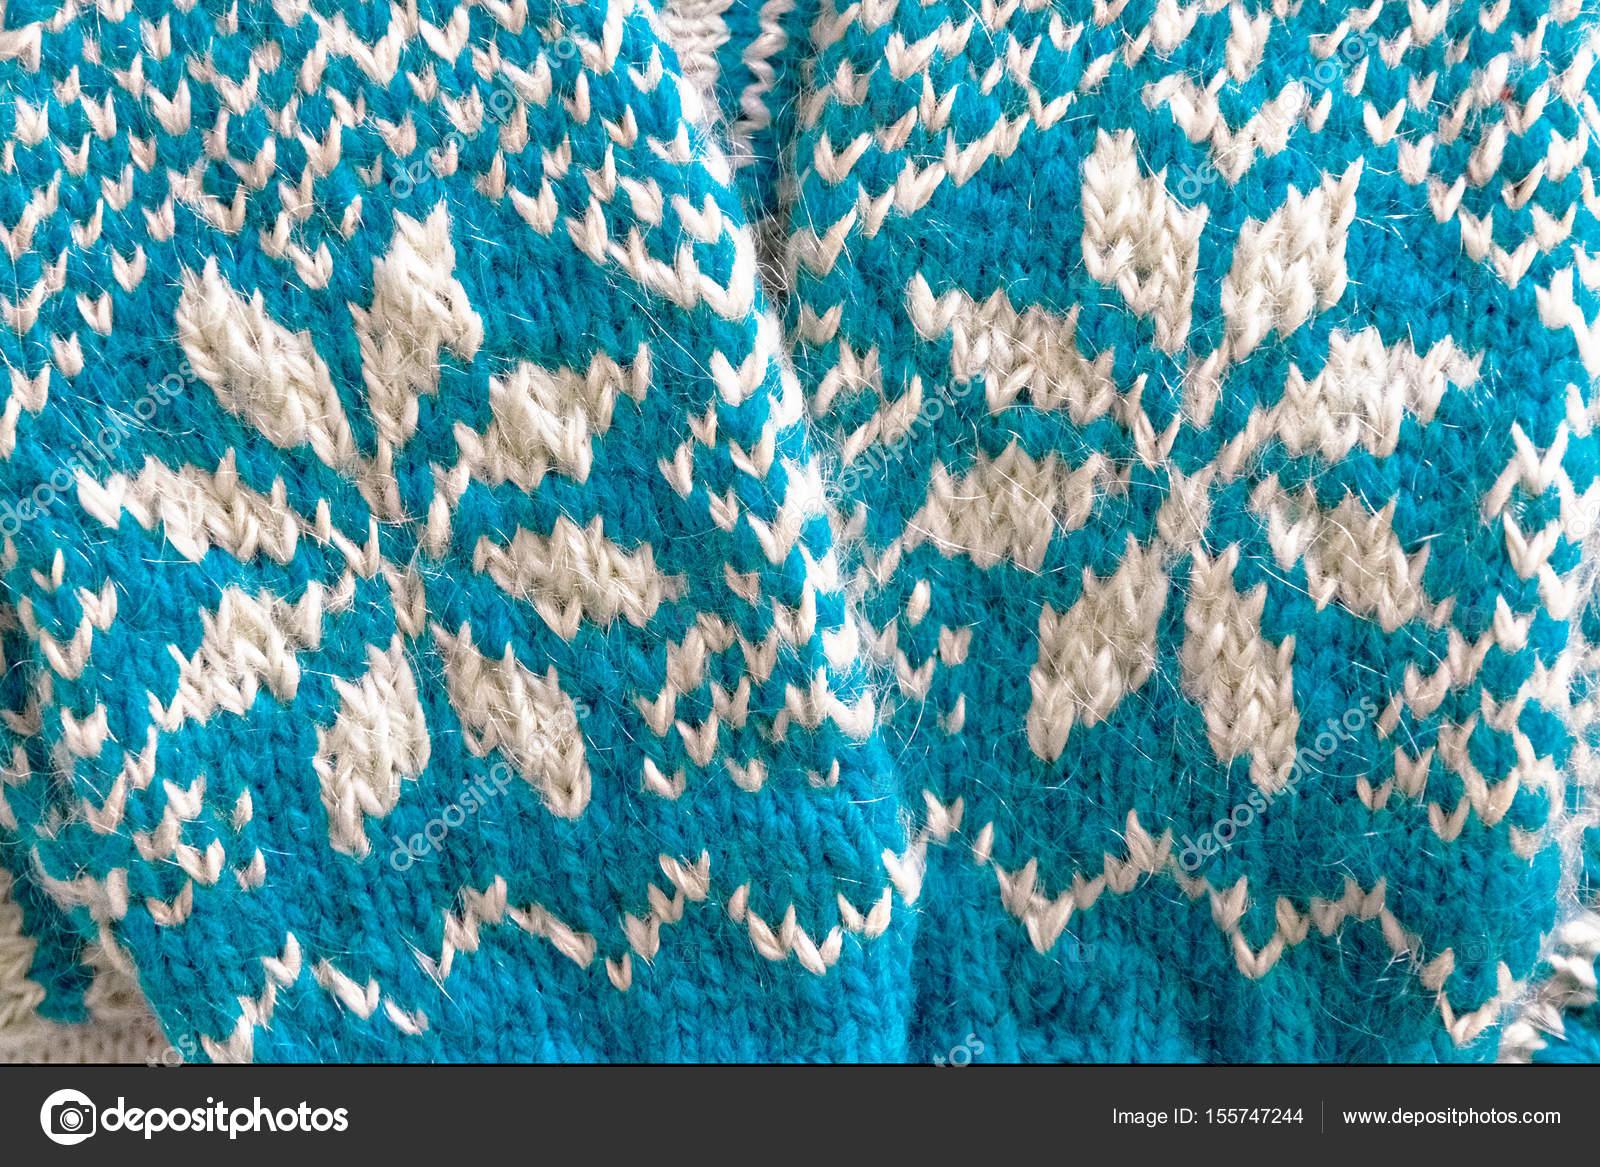 Grille jacquard tricot mauricette